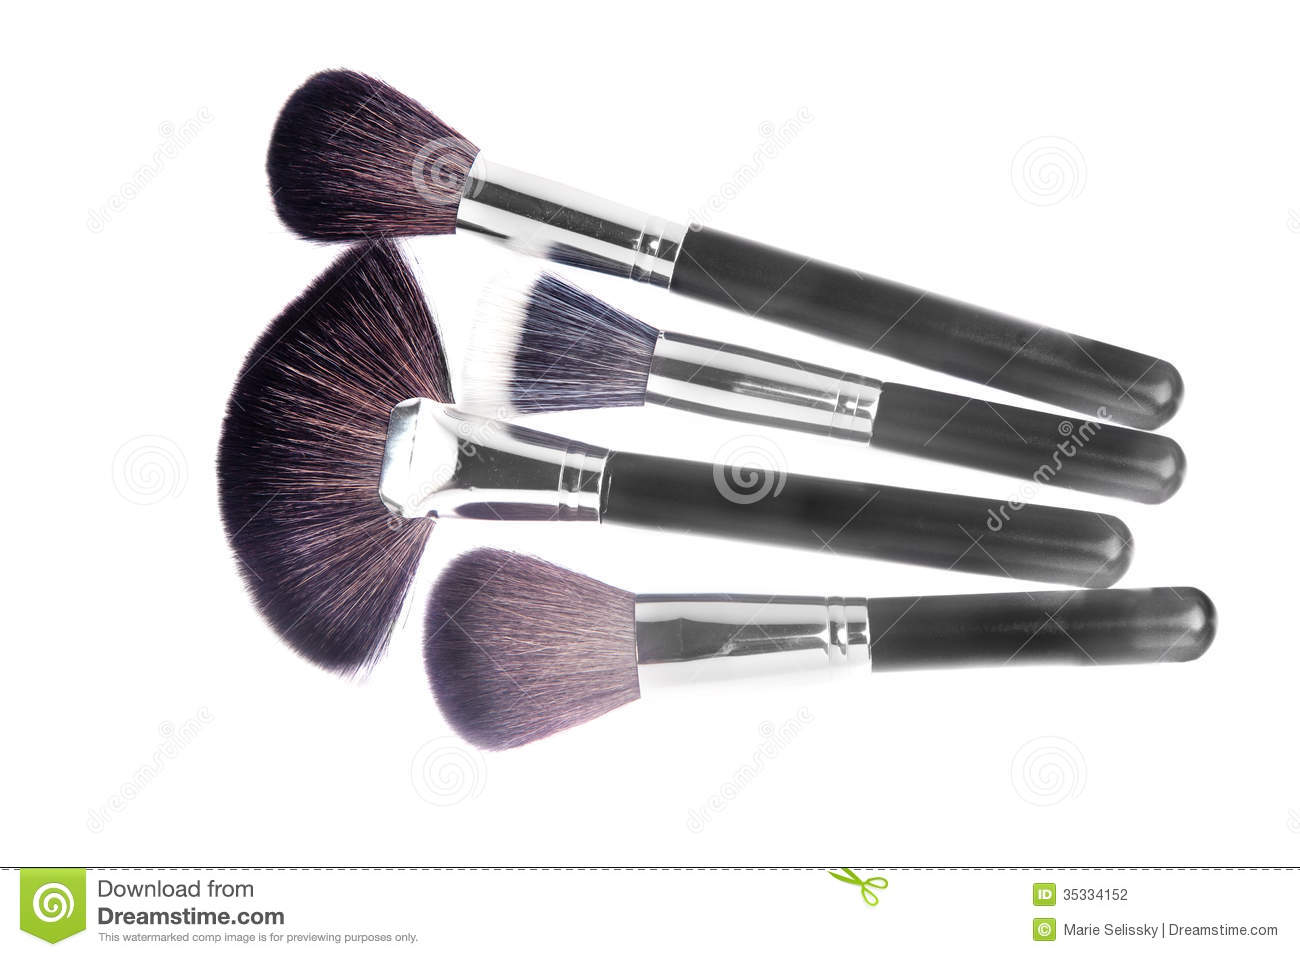 Different types of makeup powder and foundation brushes isolated on white